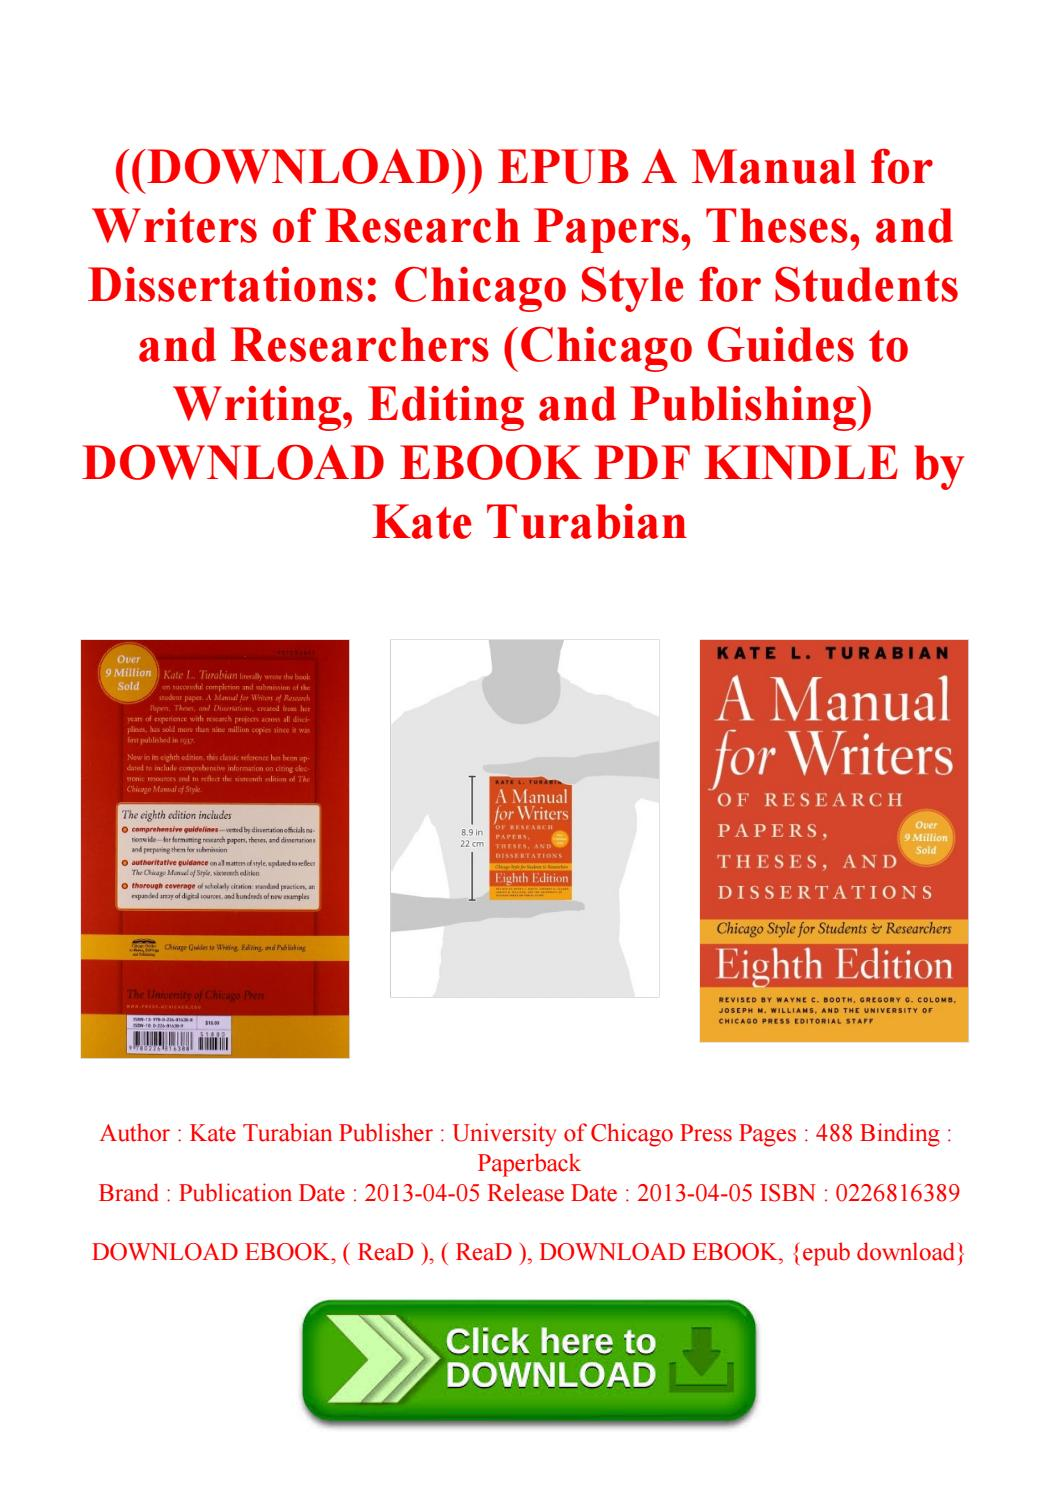 003 Page 1 Manual For Writers Of Researchs Theses And Dissertations Magnificent Research Papers A Amazon 9th Edition Pdf 8th 13 Full